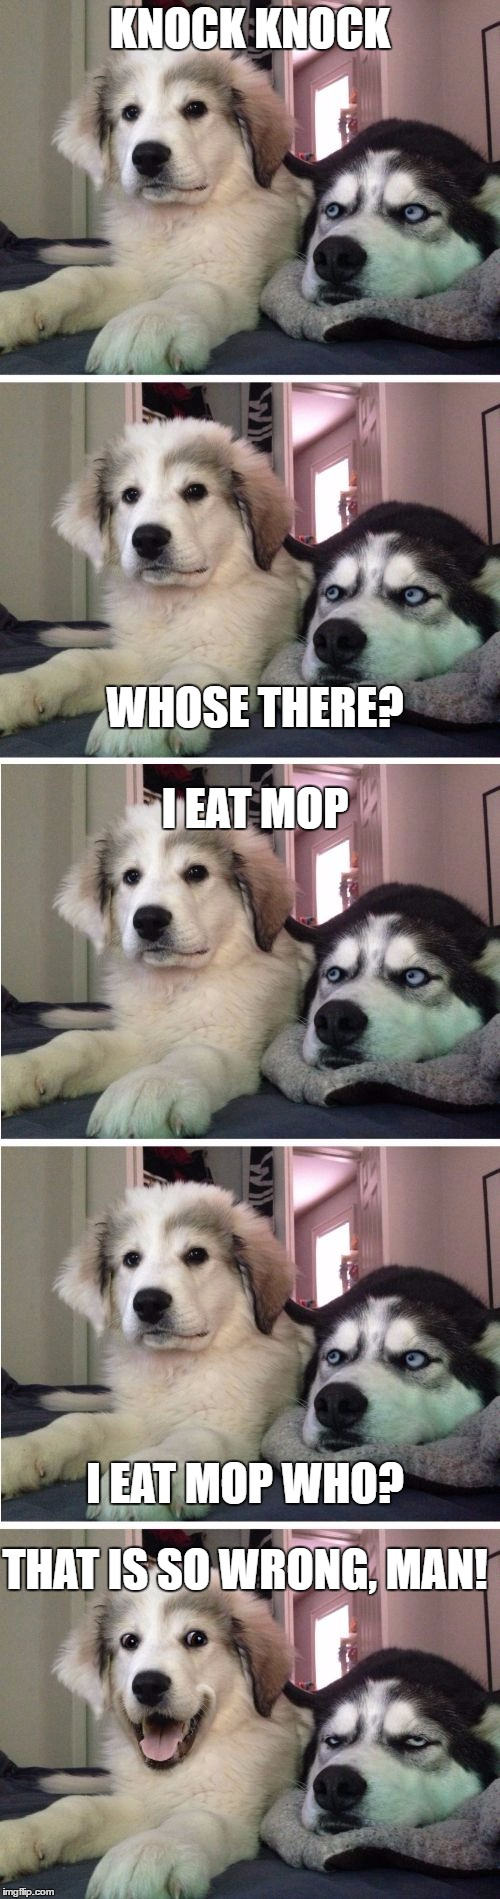 Knock Knock Dogs | KNOCK KNOCK WHOSE THERE? I EAT MOP I EAT MOP WHO? THAT IS SO WRONG, MAN! | image tagged in knock knock dogs | made w/ Imgflip meme maker